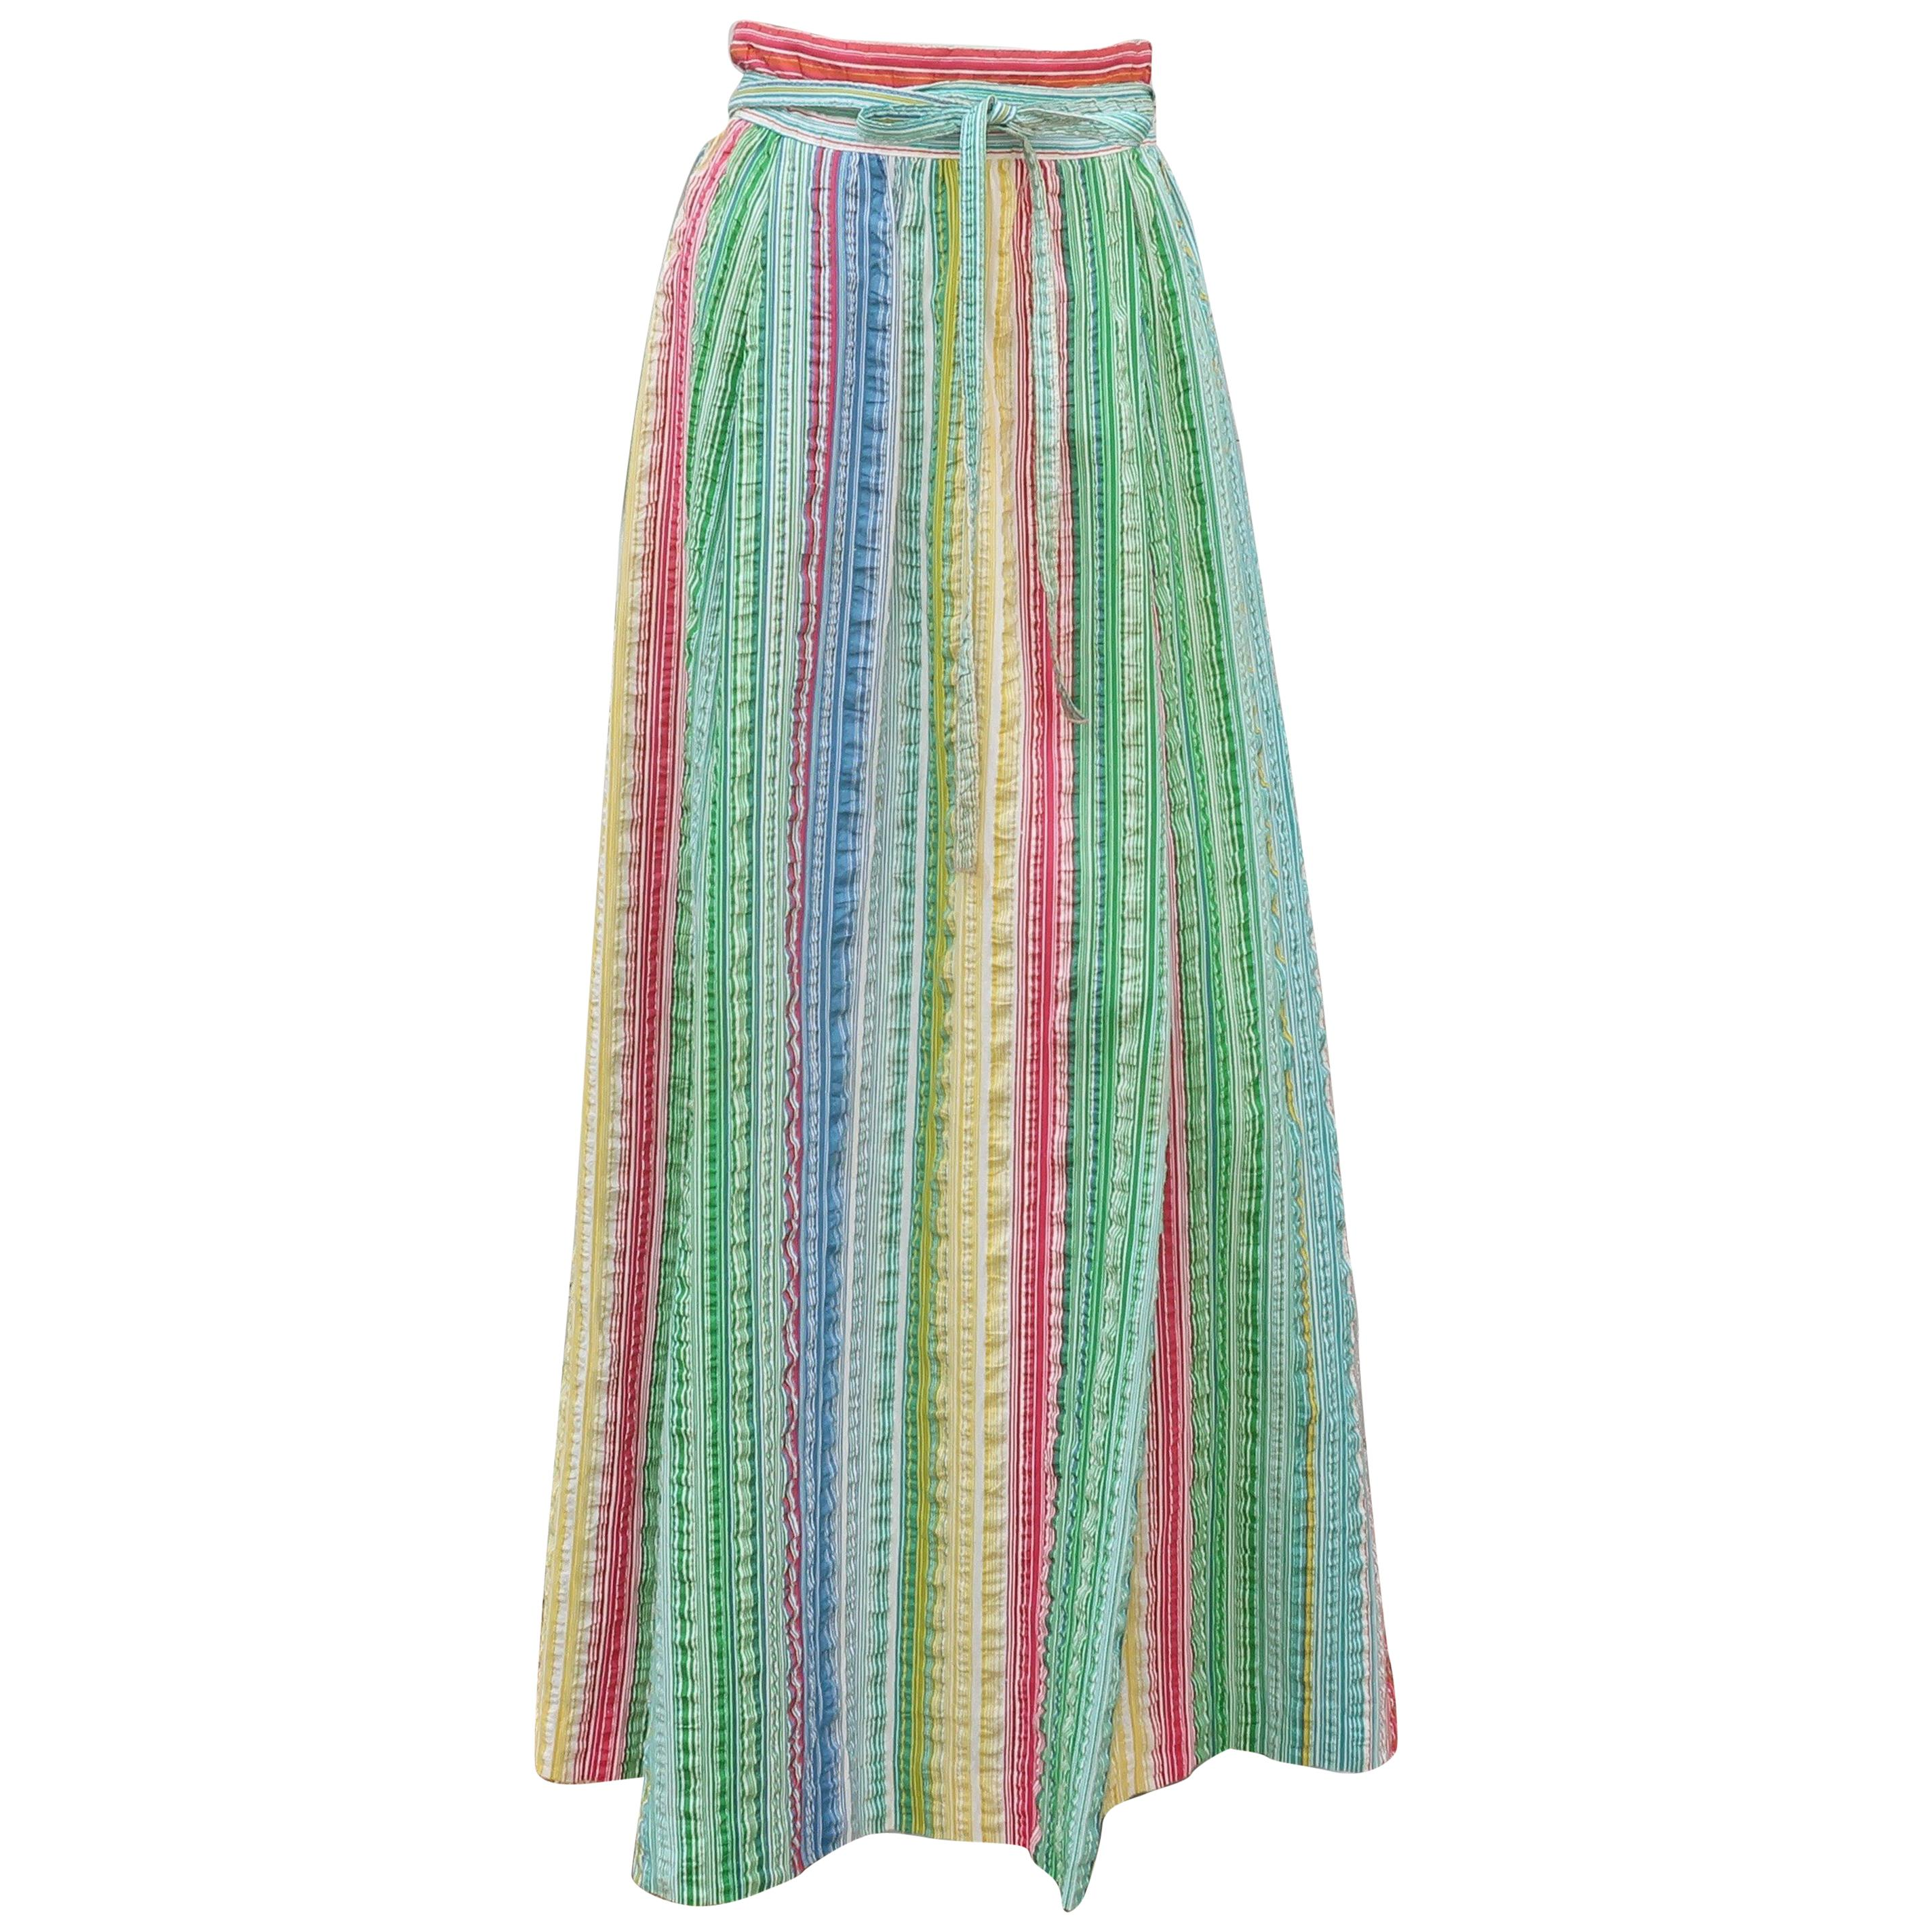 84fedc04d6 Summer Skirts - 102 For Sale on 1stdibs